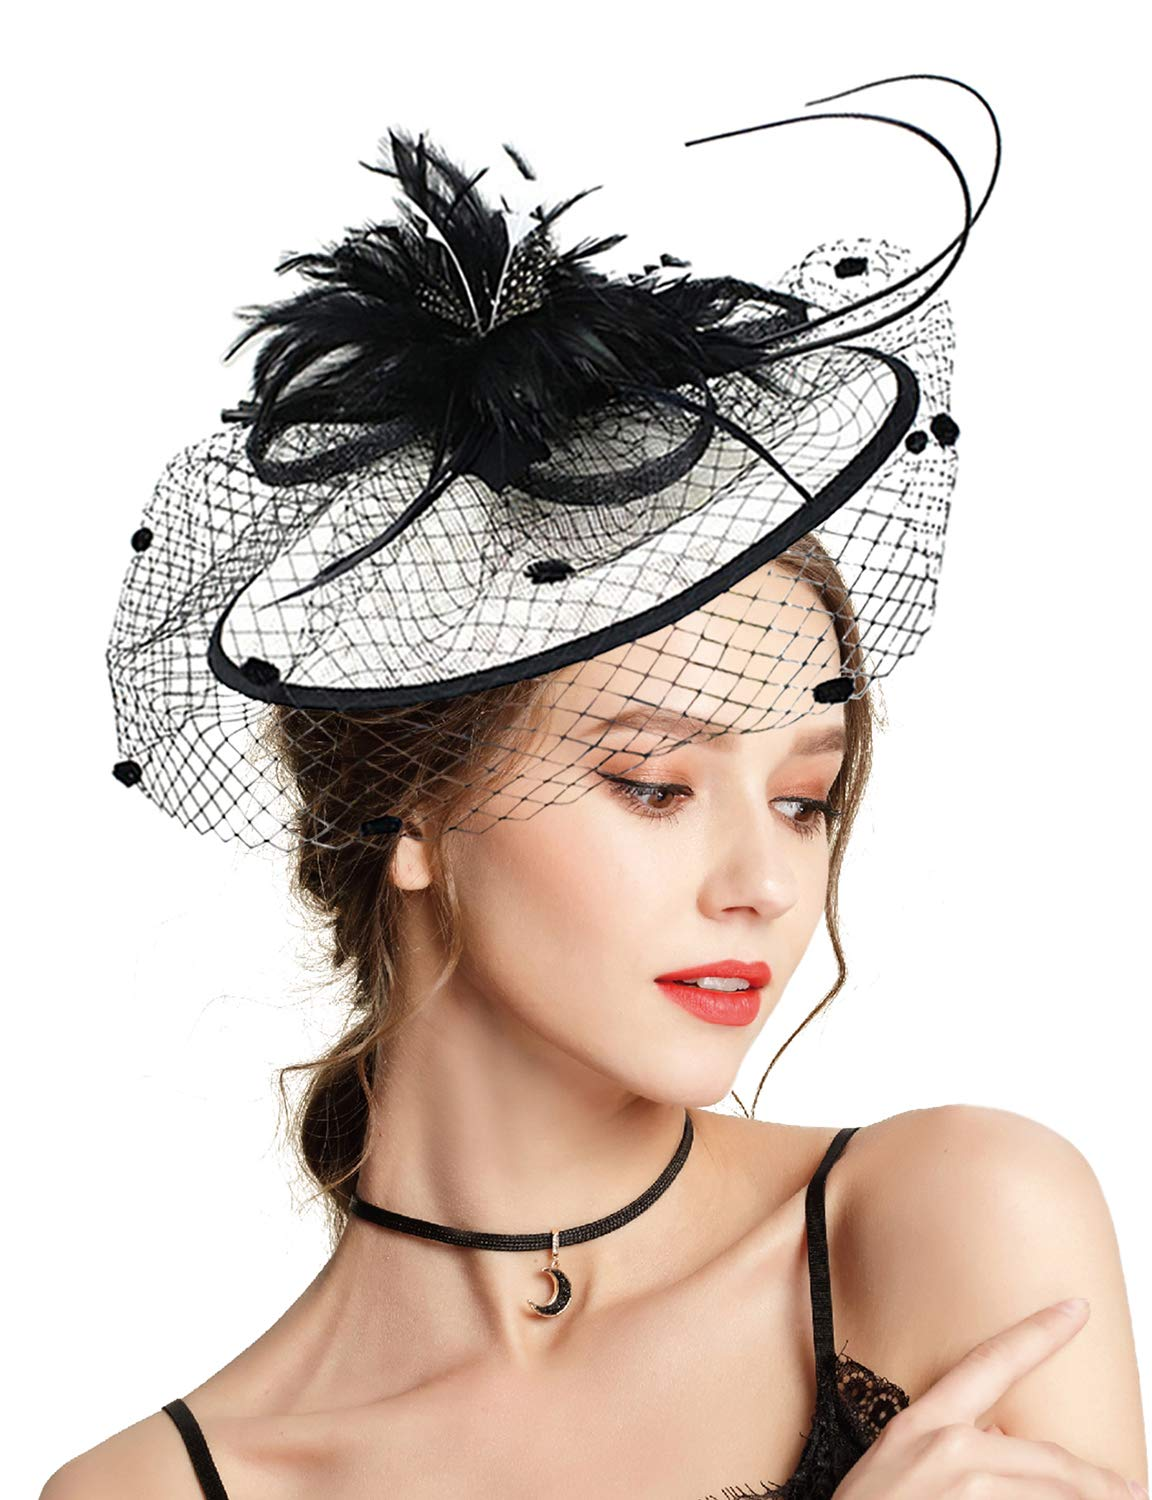 Z&X Fascinator with Headband Derby Party Feather Floral Mesh Pillbox Hat Black